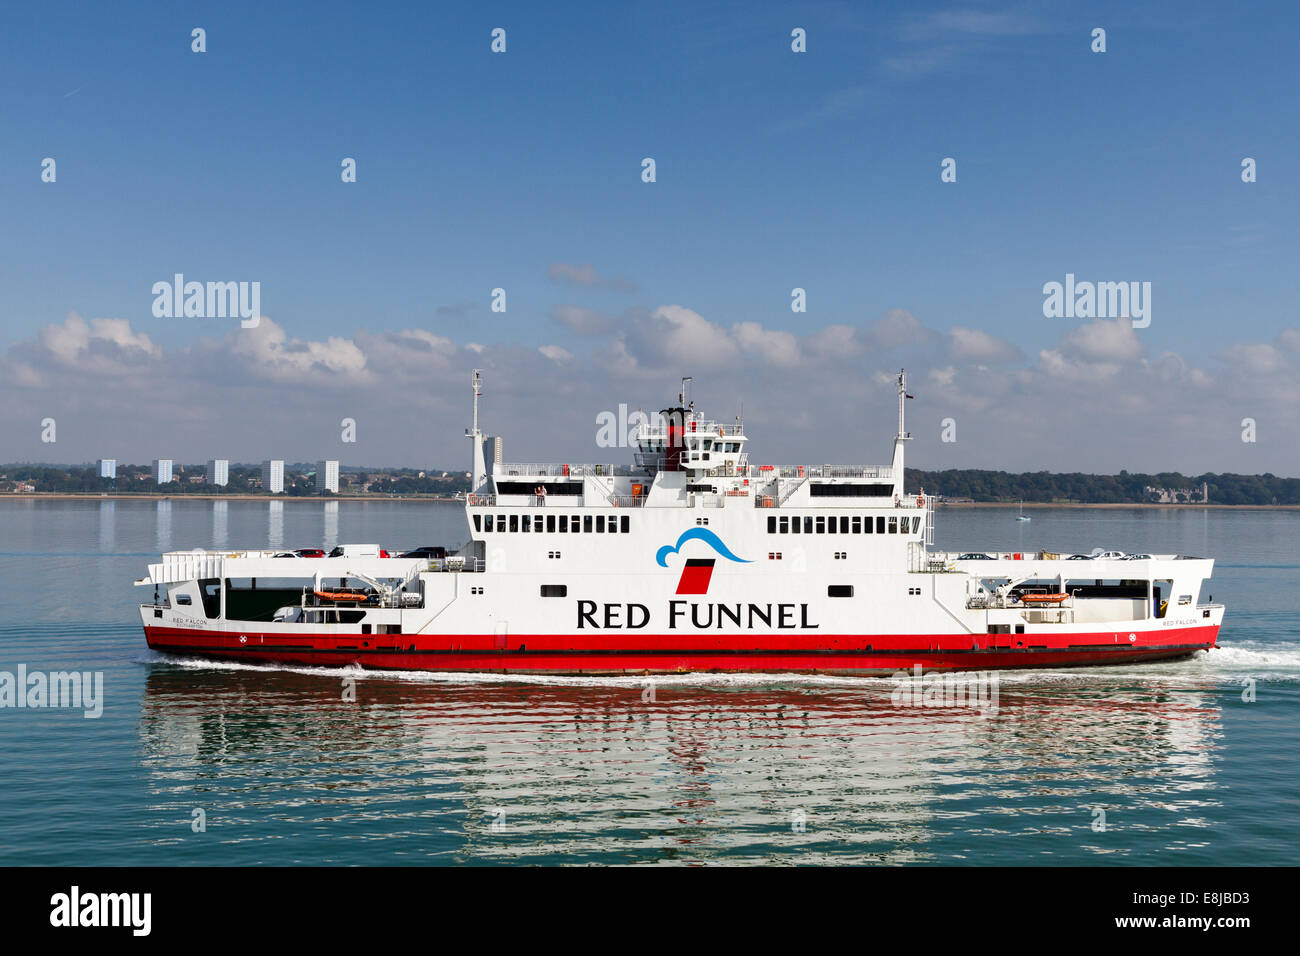 Red Funnel car ferry ,the Solent, Southampton, England, UK - Stock Image